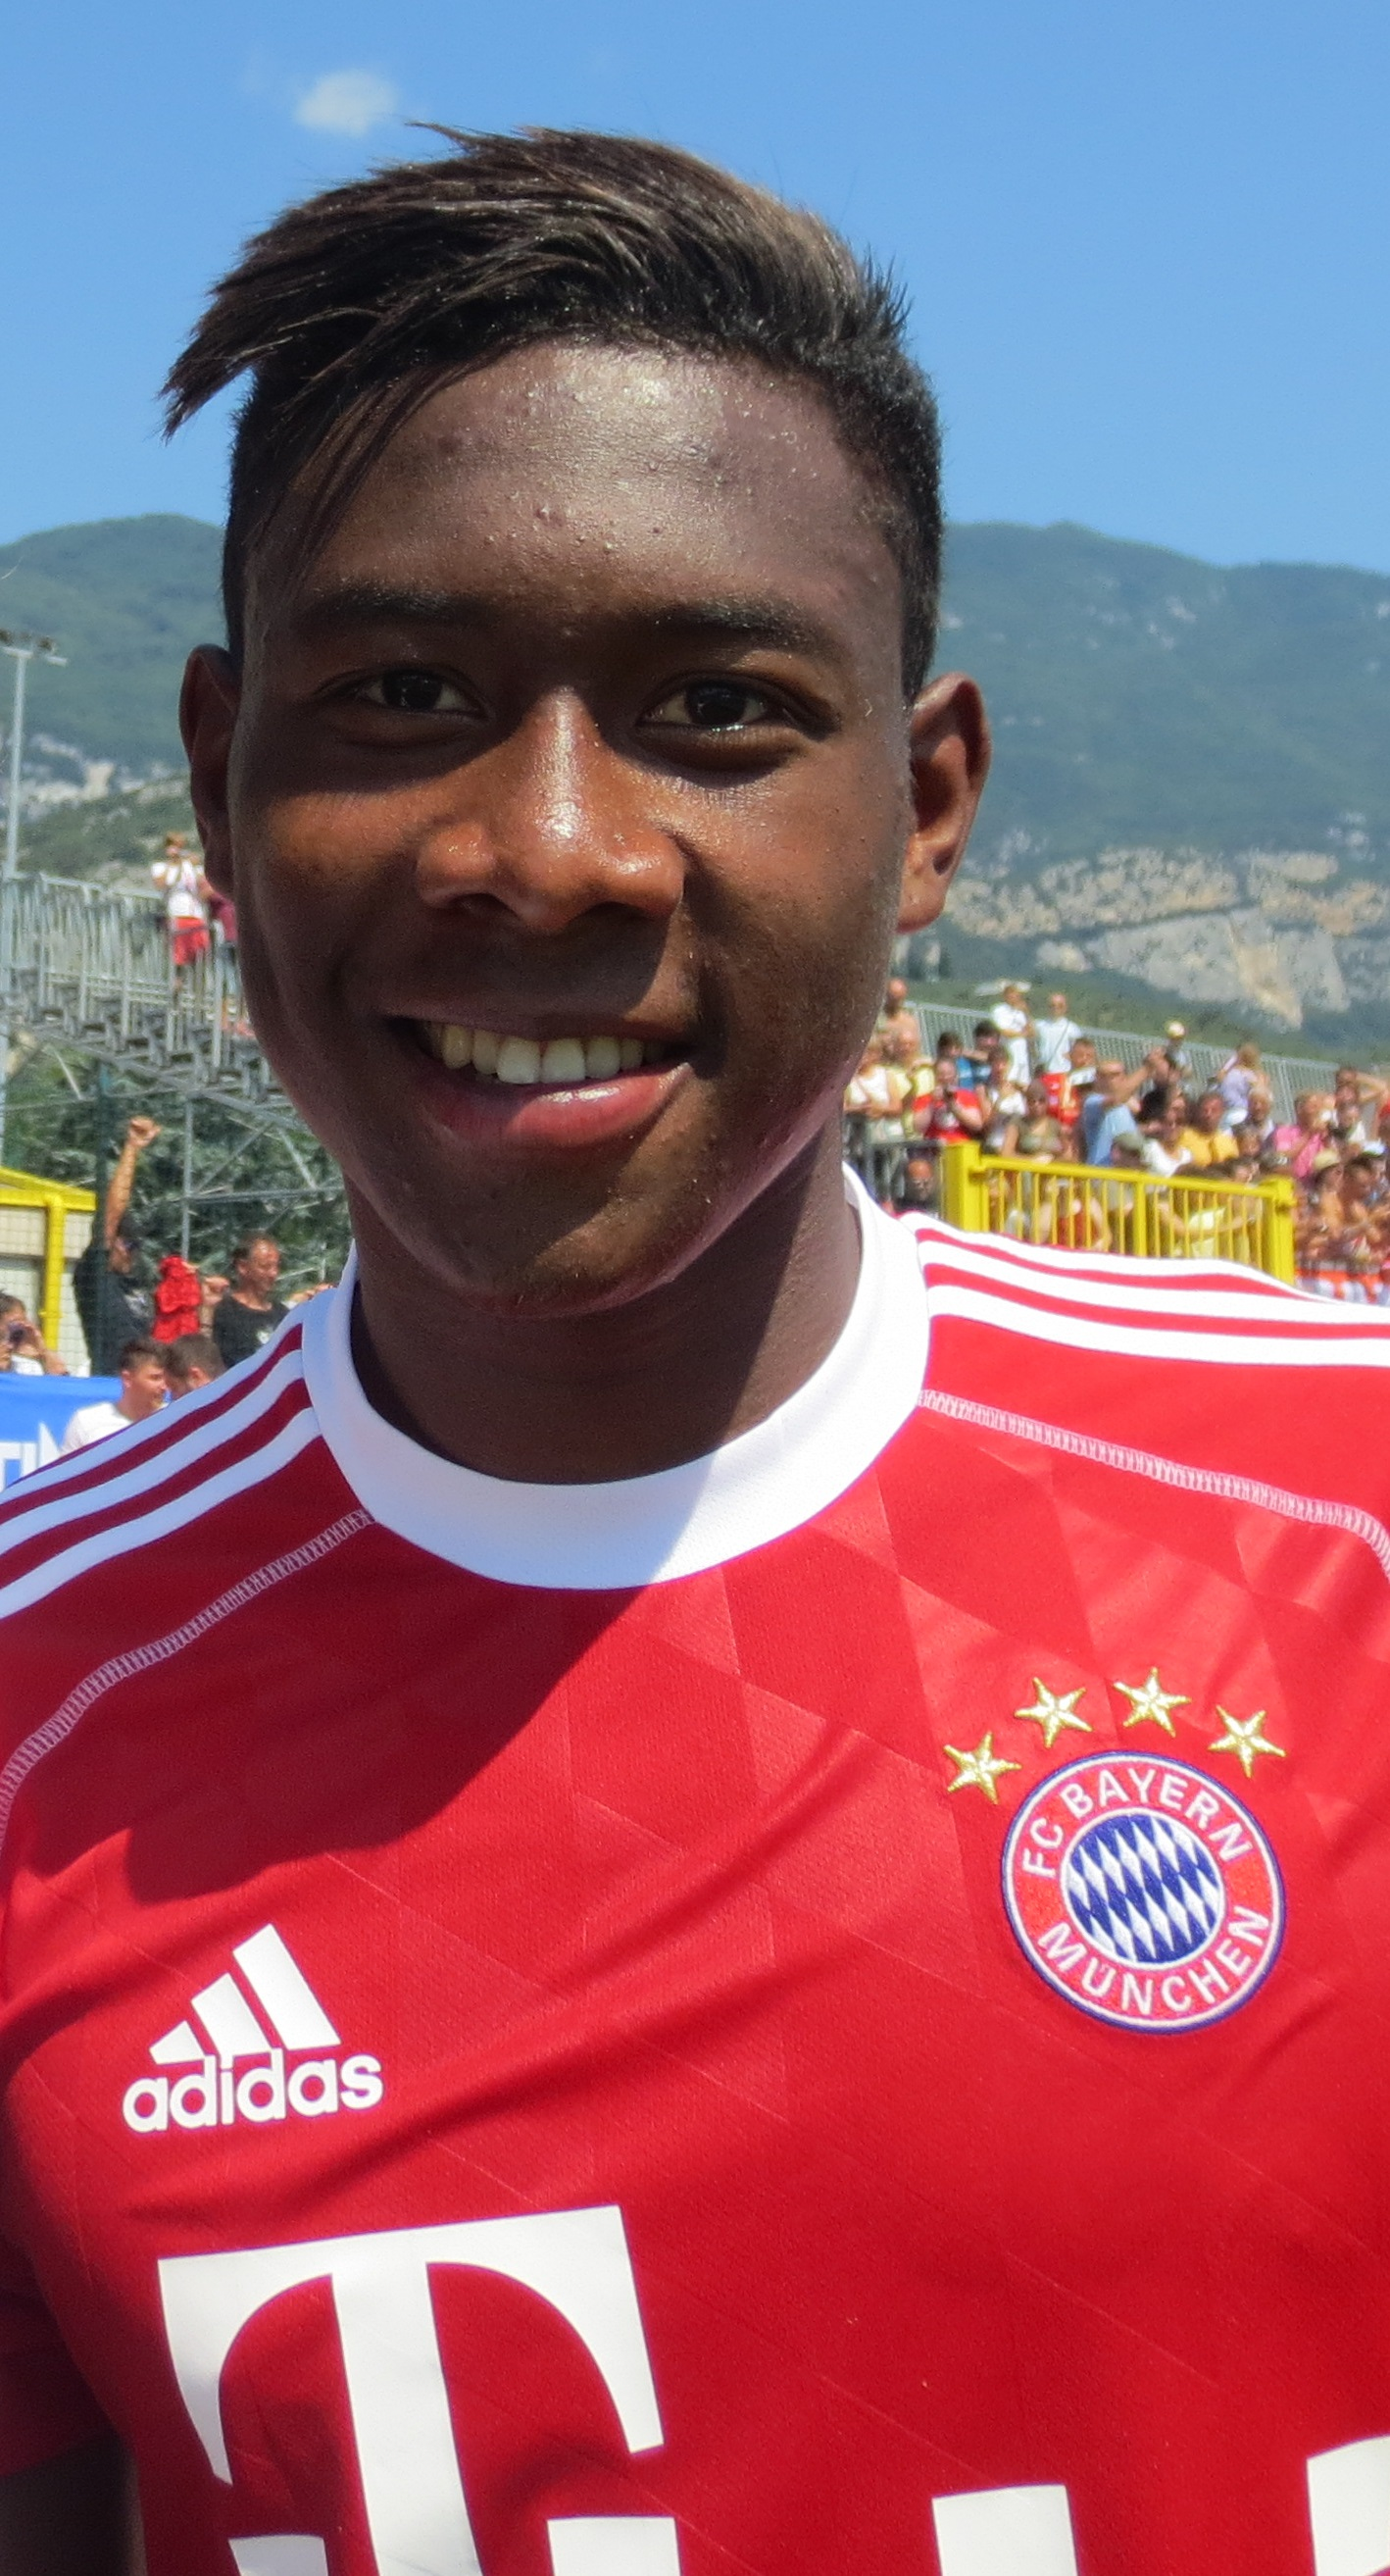 http://upload.wikimedia.org/wikipedia/commons/b/b3/David_Alaba_2013.JPG